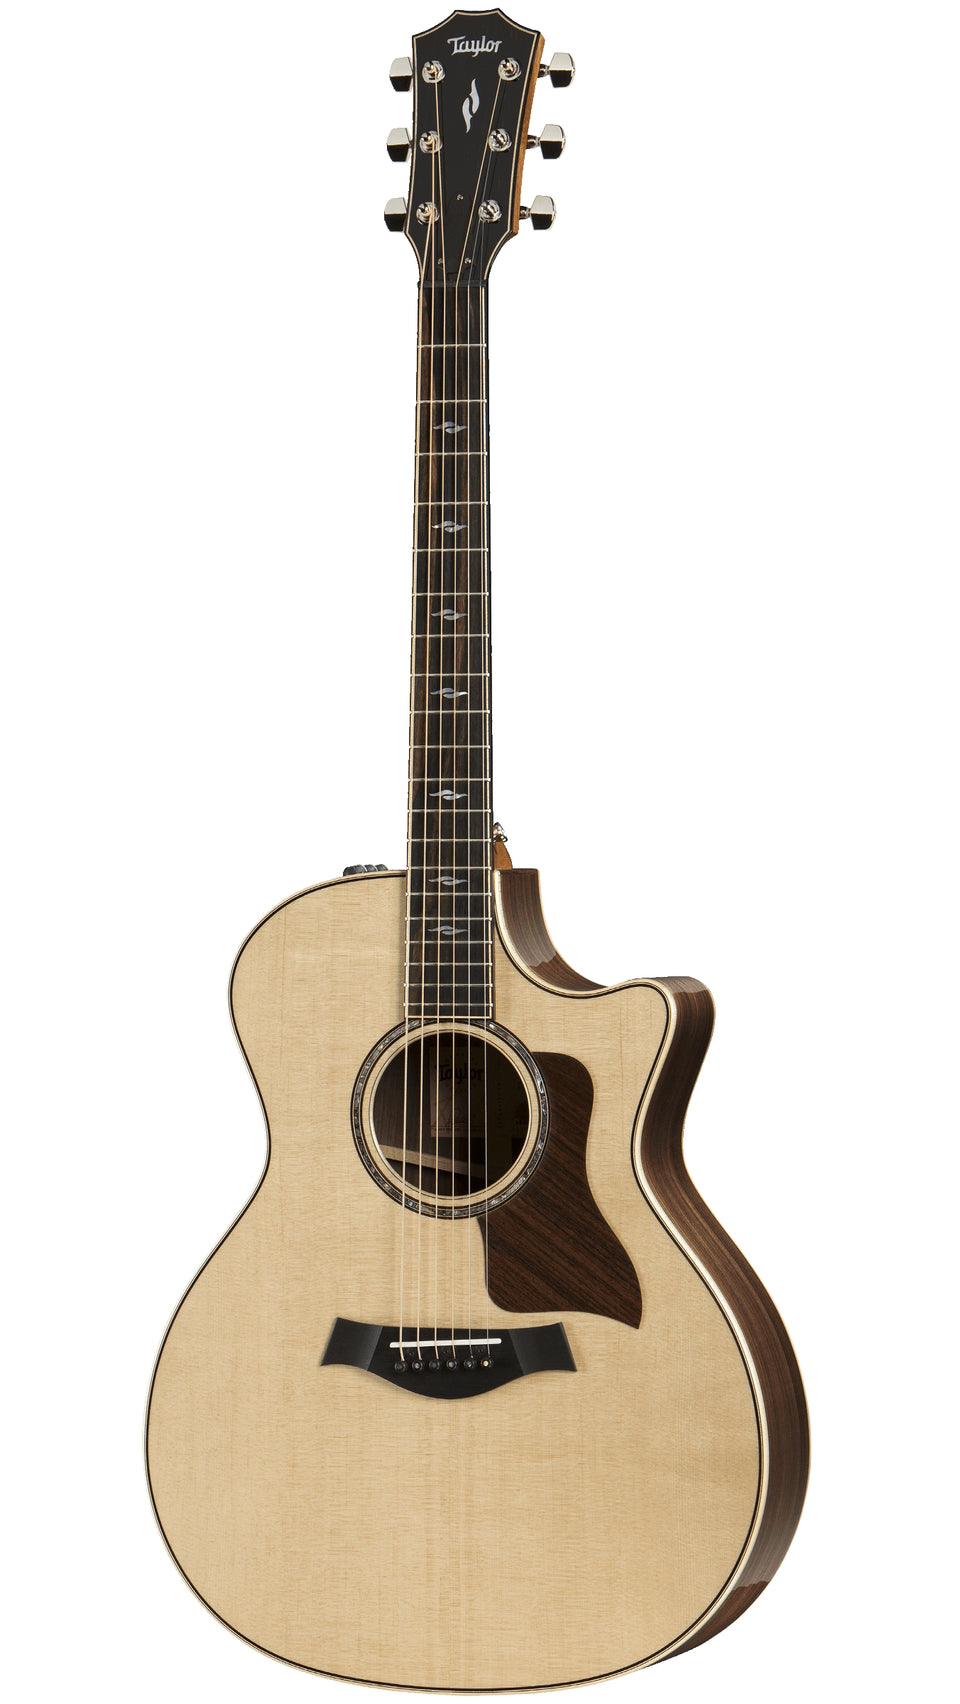 Taylor 814ce V Class Acoustic Electric Guitar